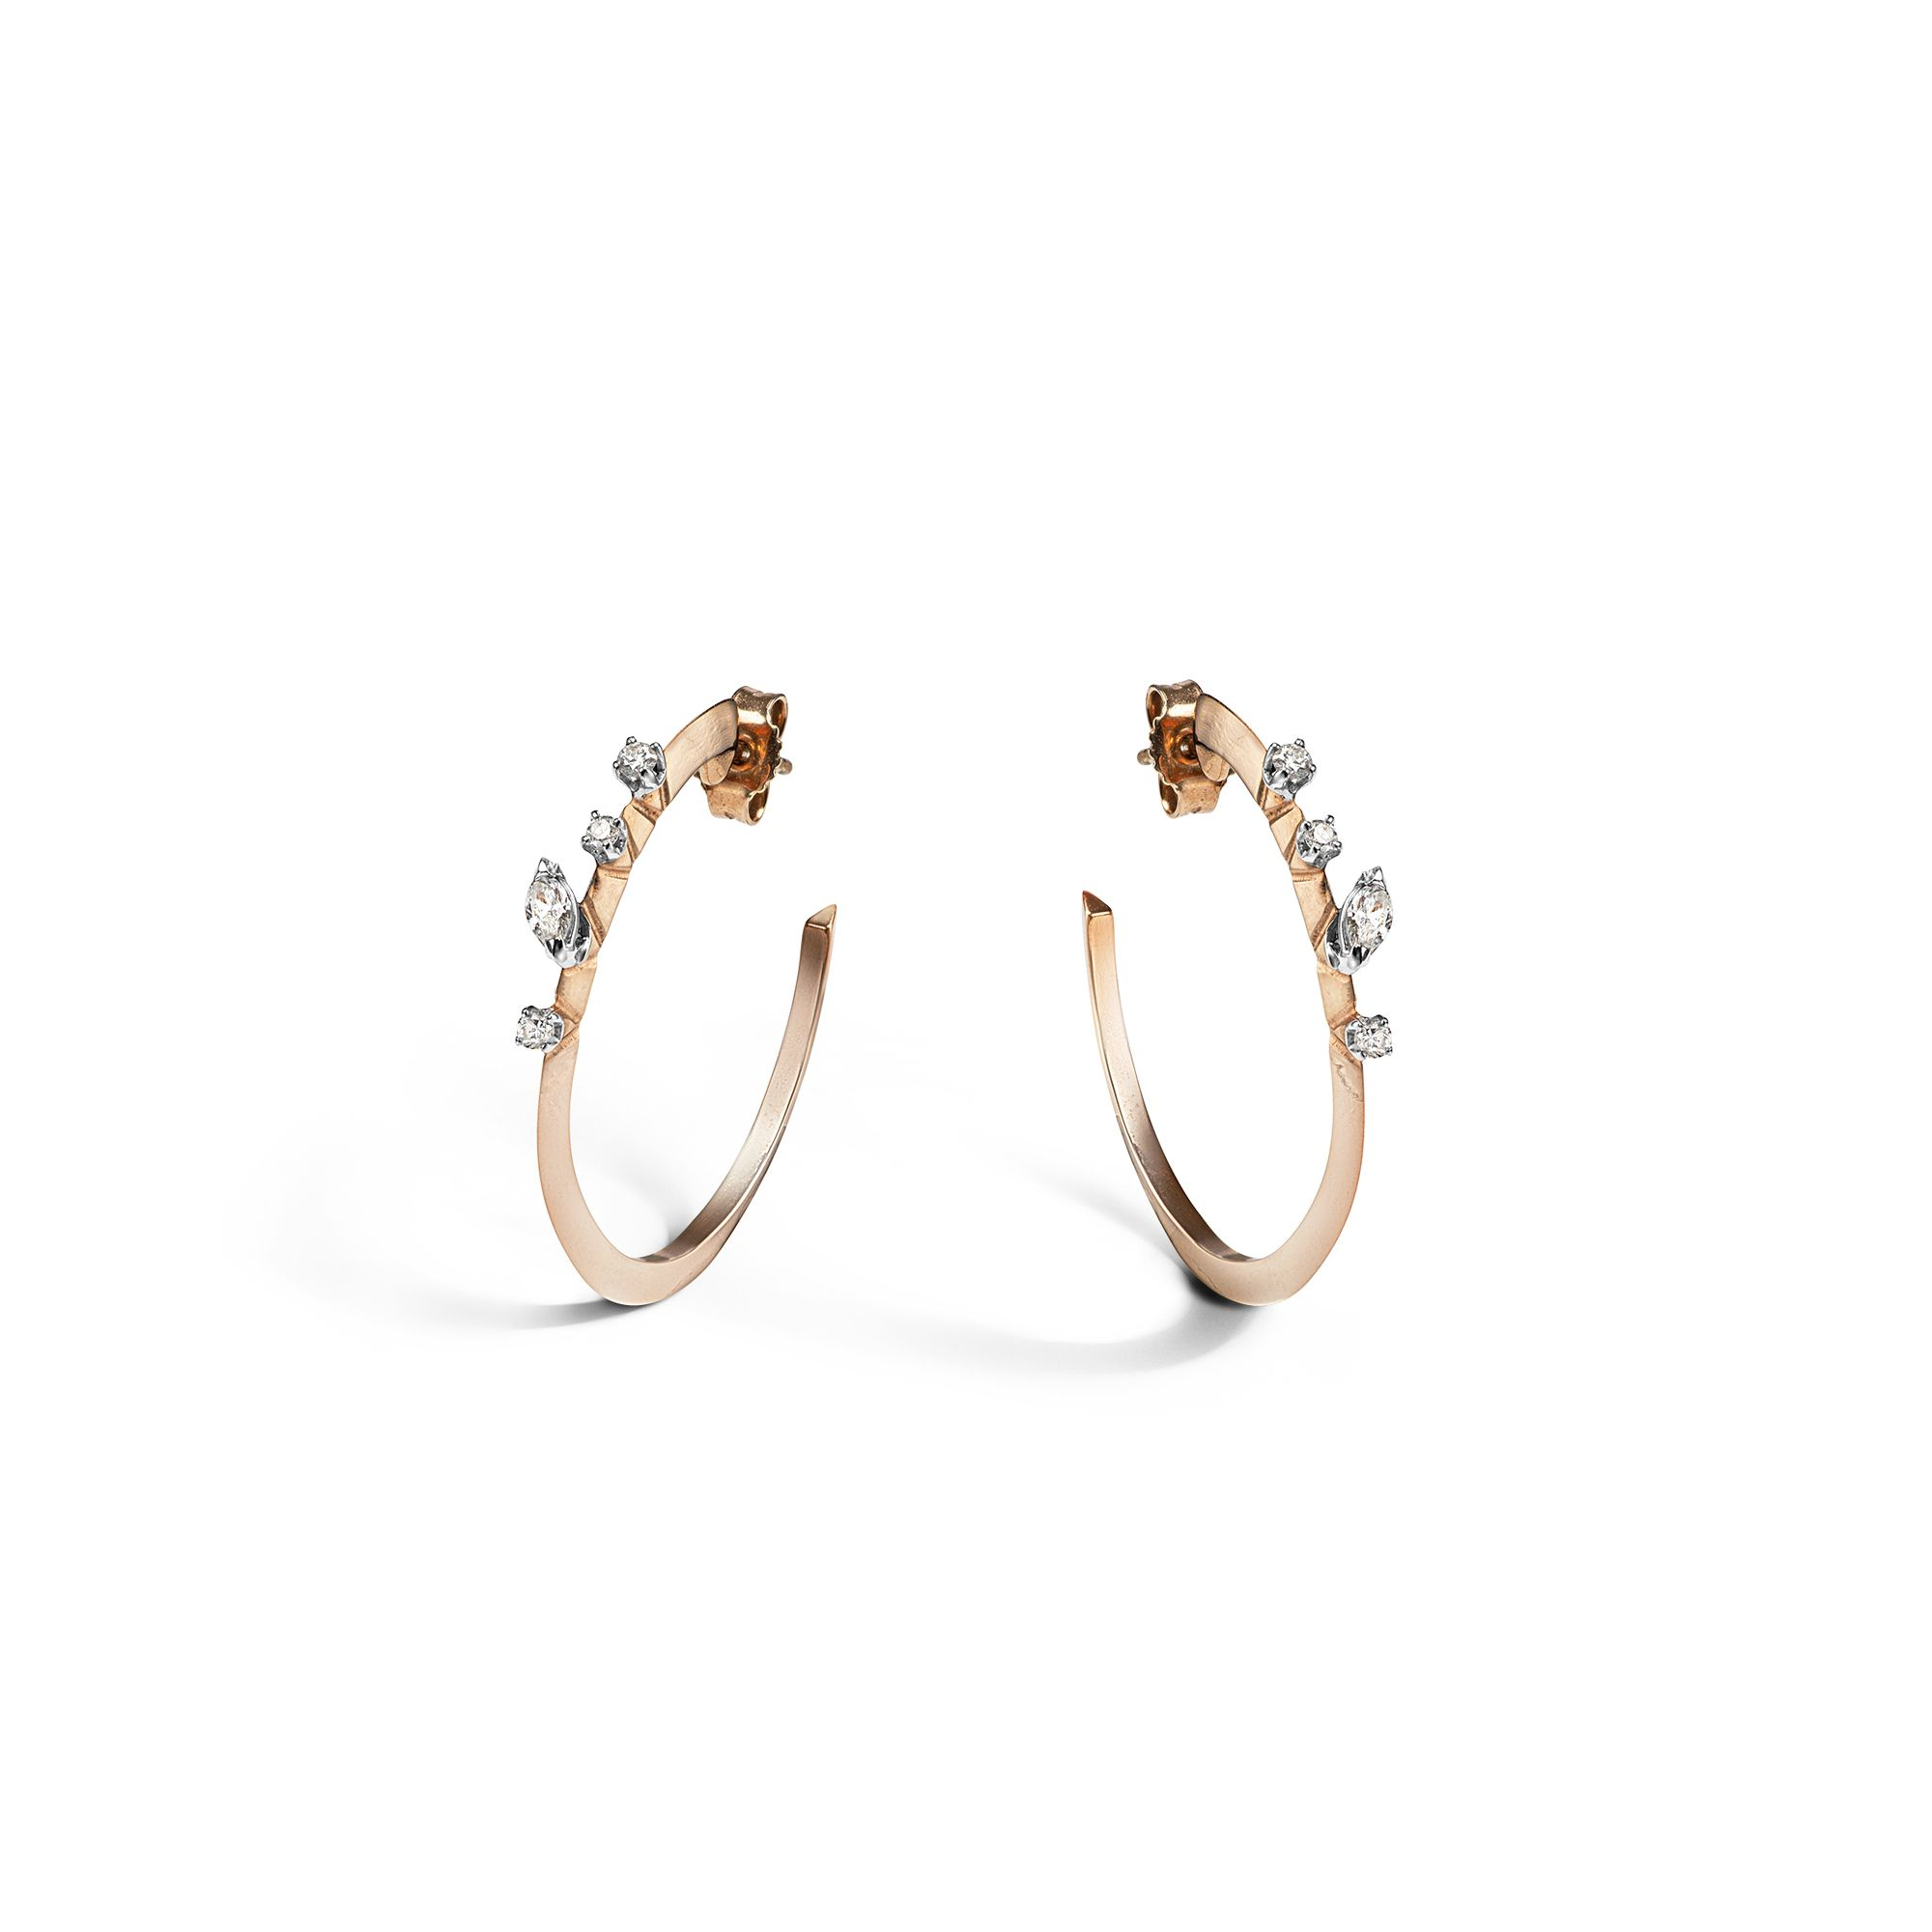 Rose gold 'Balance' hoop earrings Rose gold earrings with diamonds